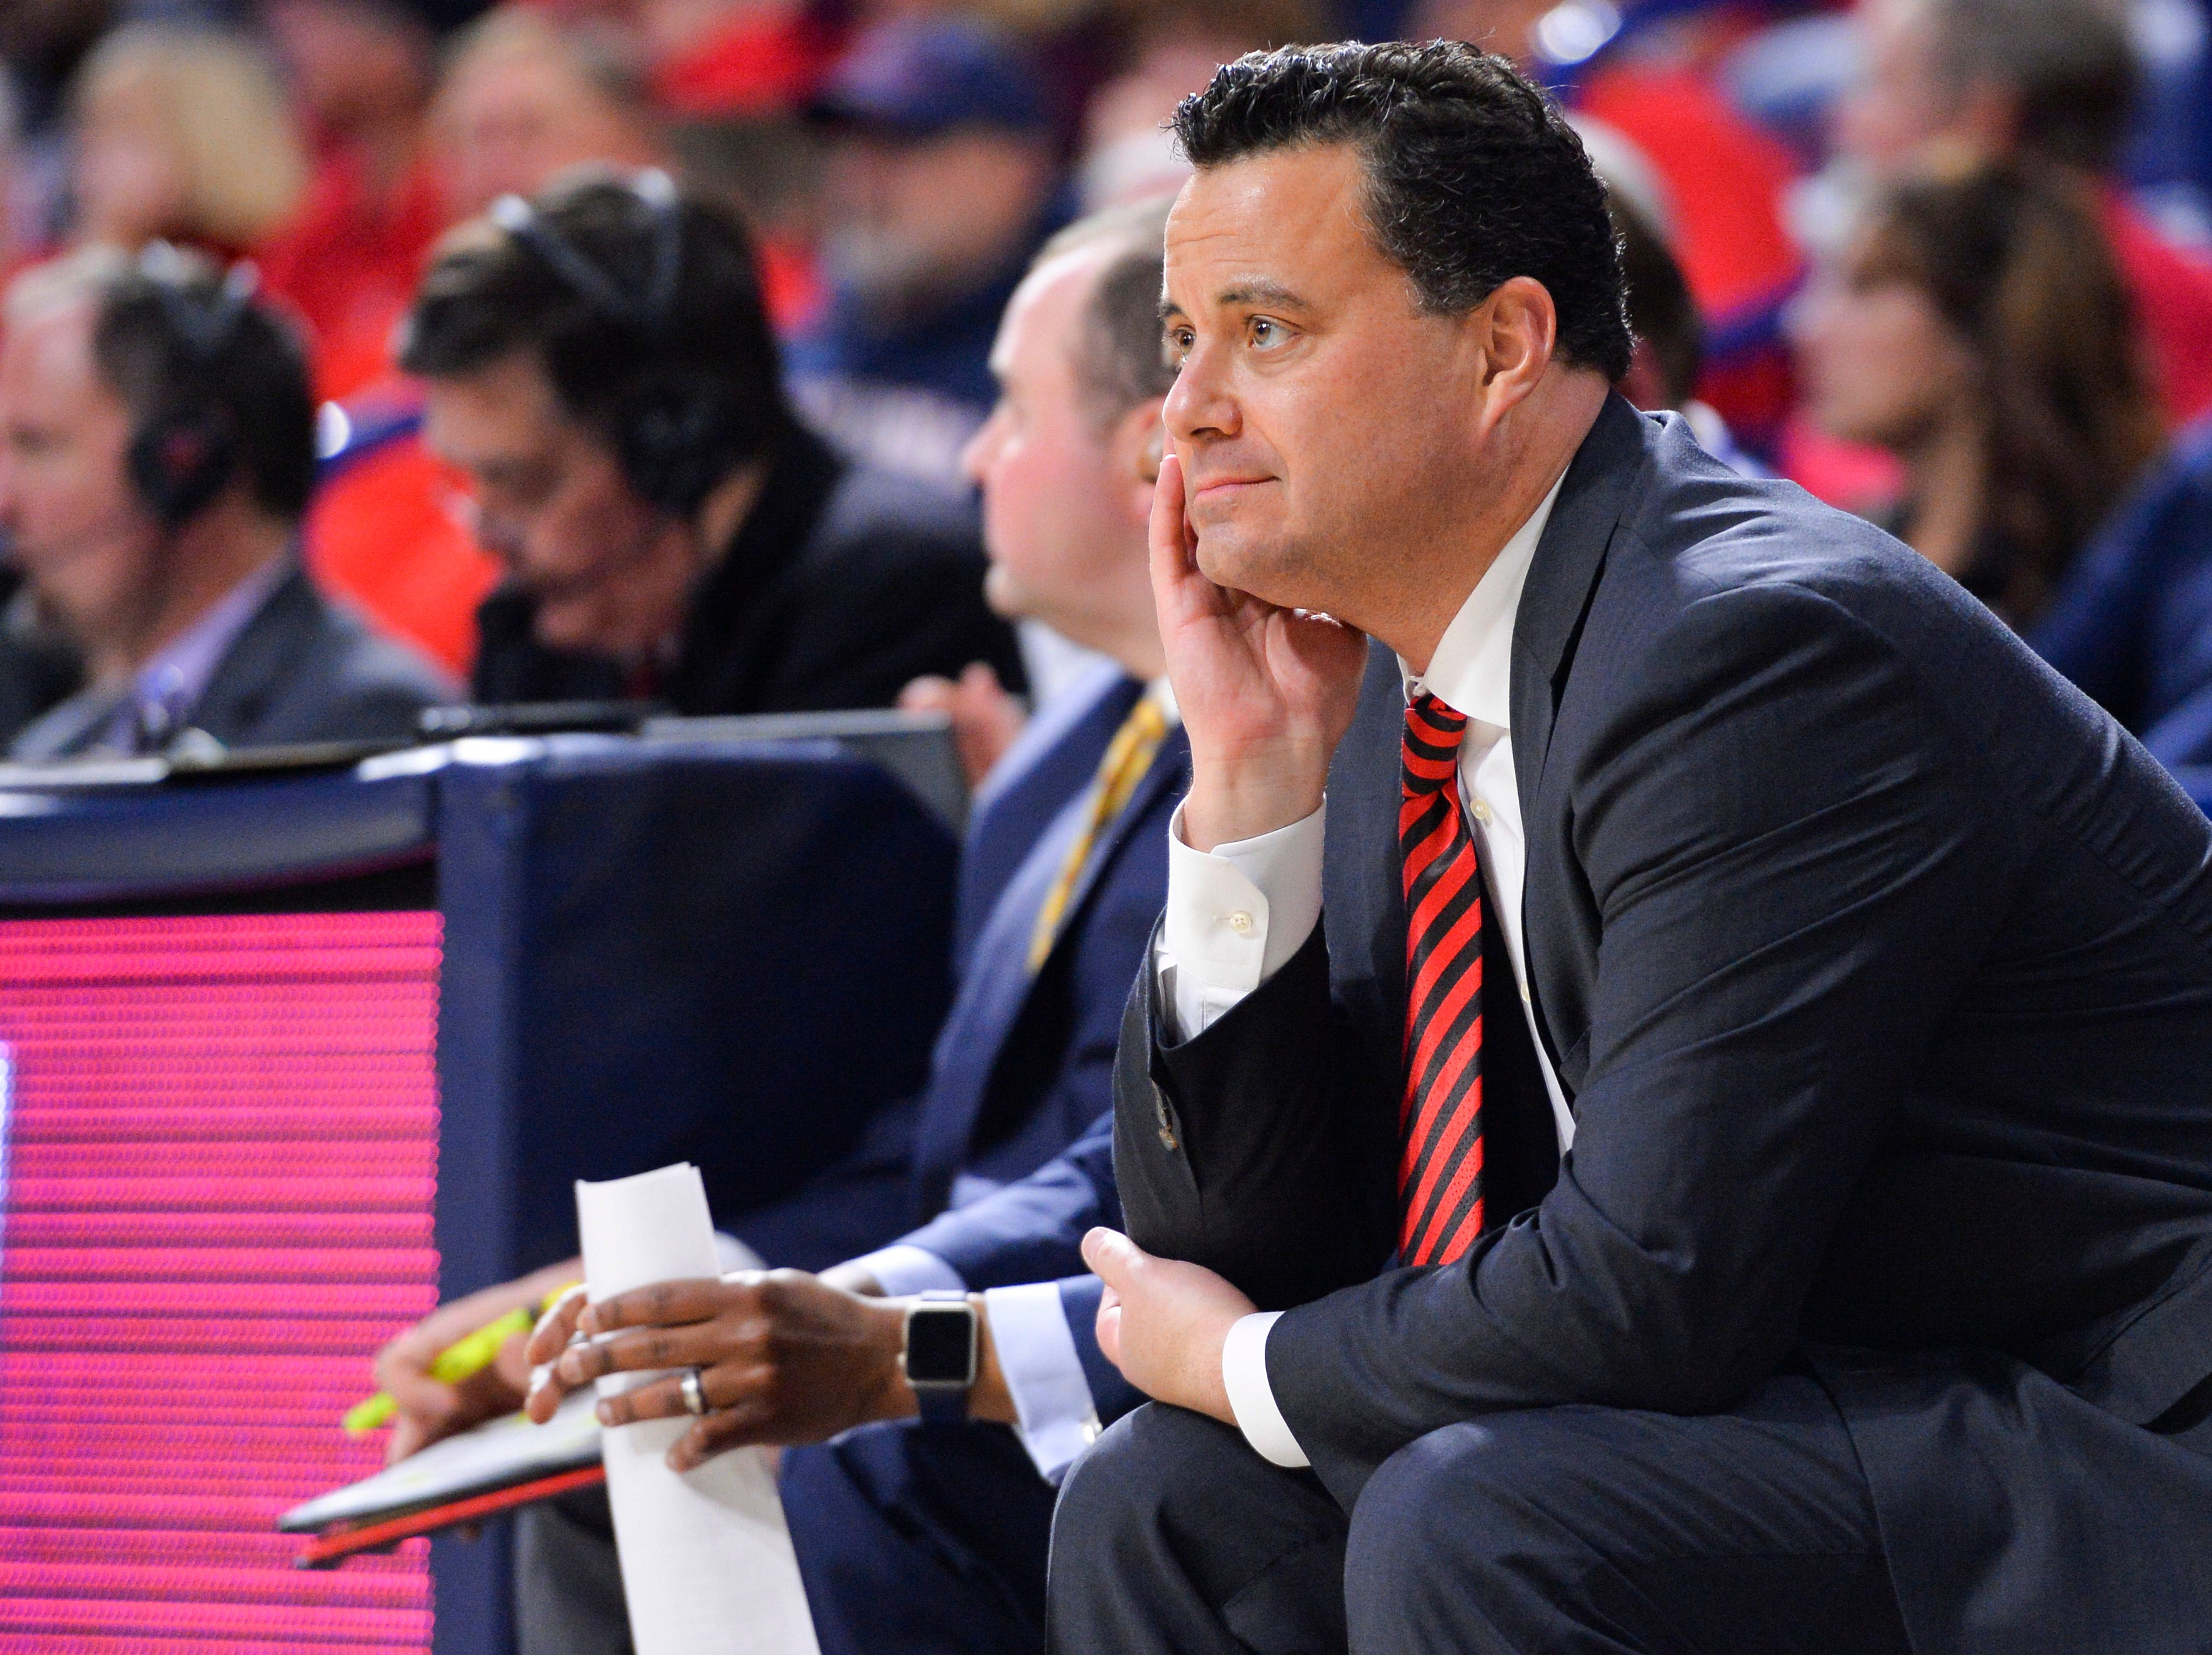 Feb 9, 2019; Tucson, AZ, USA; Arizona Wildcats head coach Sean Miller watches from the bench during the first half against the Washington State Cougars at McKale Center. Mandatory Credit: Casey Sapio-USA TODAY Sports